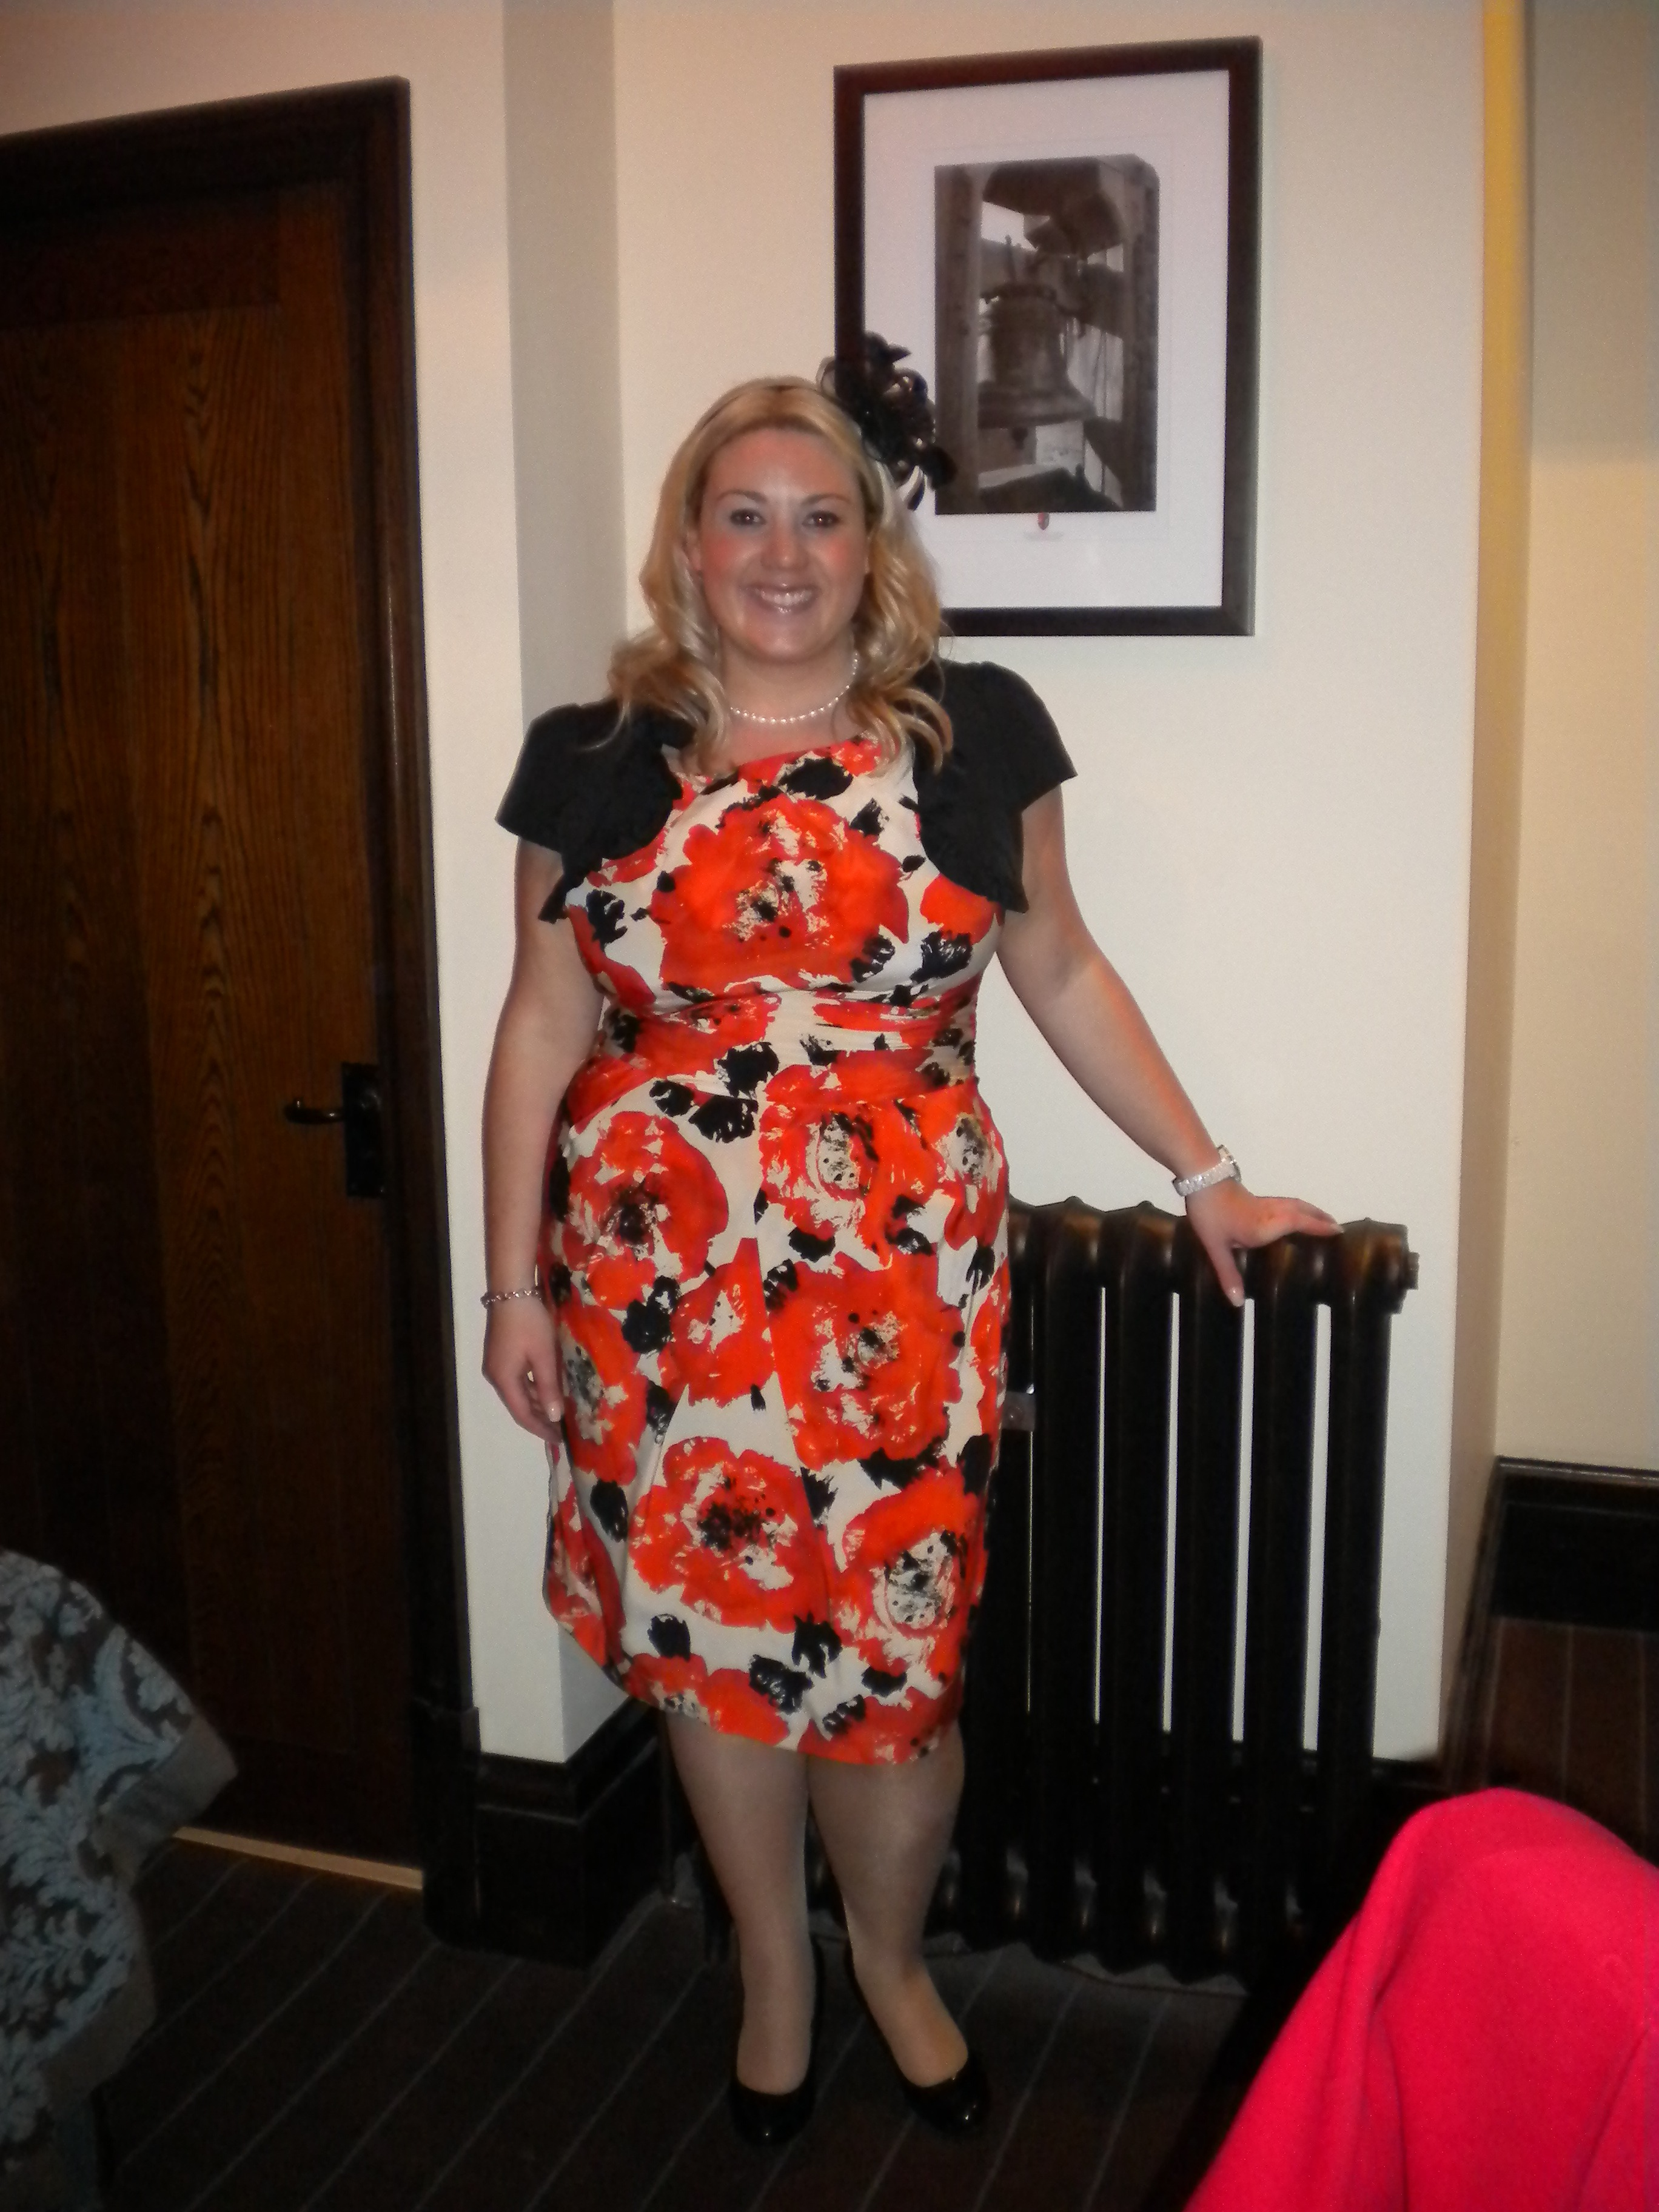 Fat The Fight of Their Lives, Obese a Year to save my life, Jessie Pavelka, Valentine Rawat, Personal Trainer Leeds, Wetherby Personal Trainer, Personal Trainer York,Weight Loss Expert UK